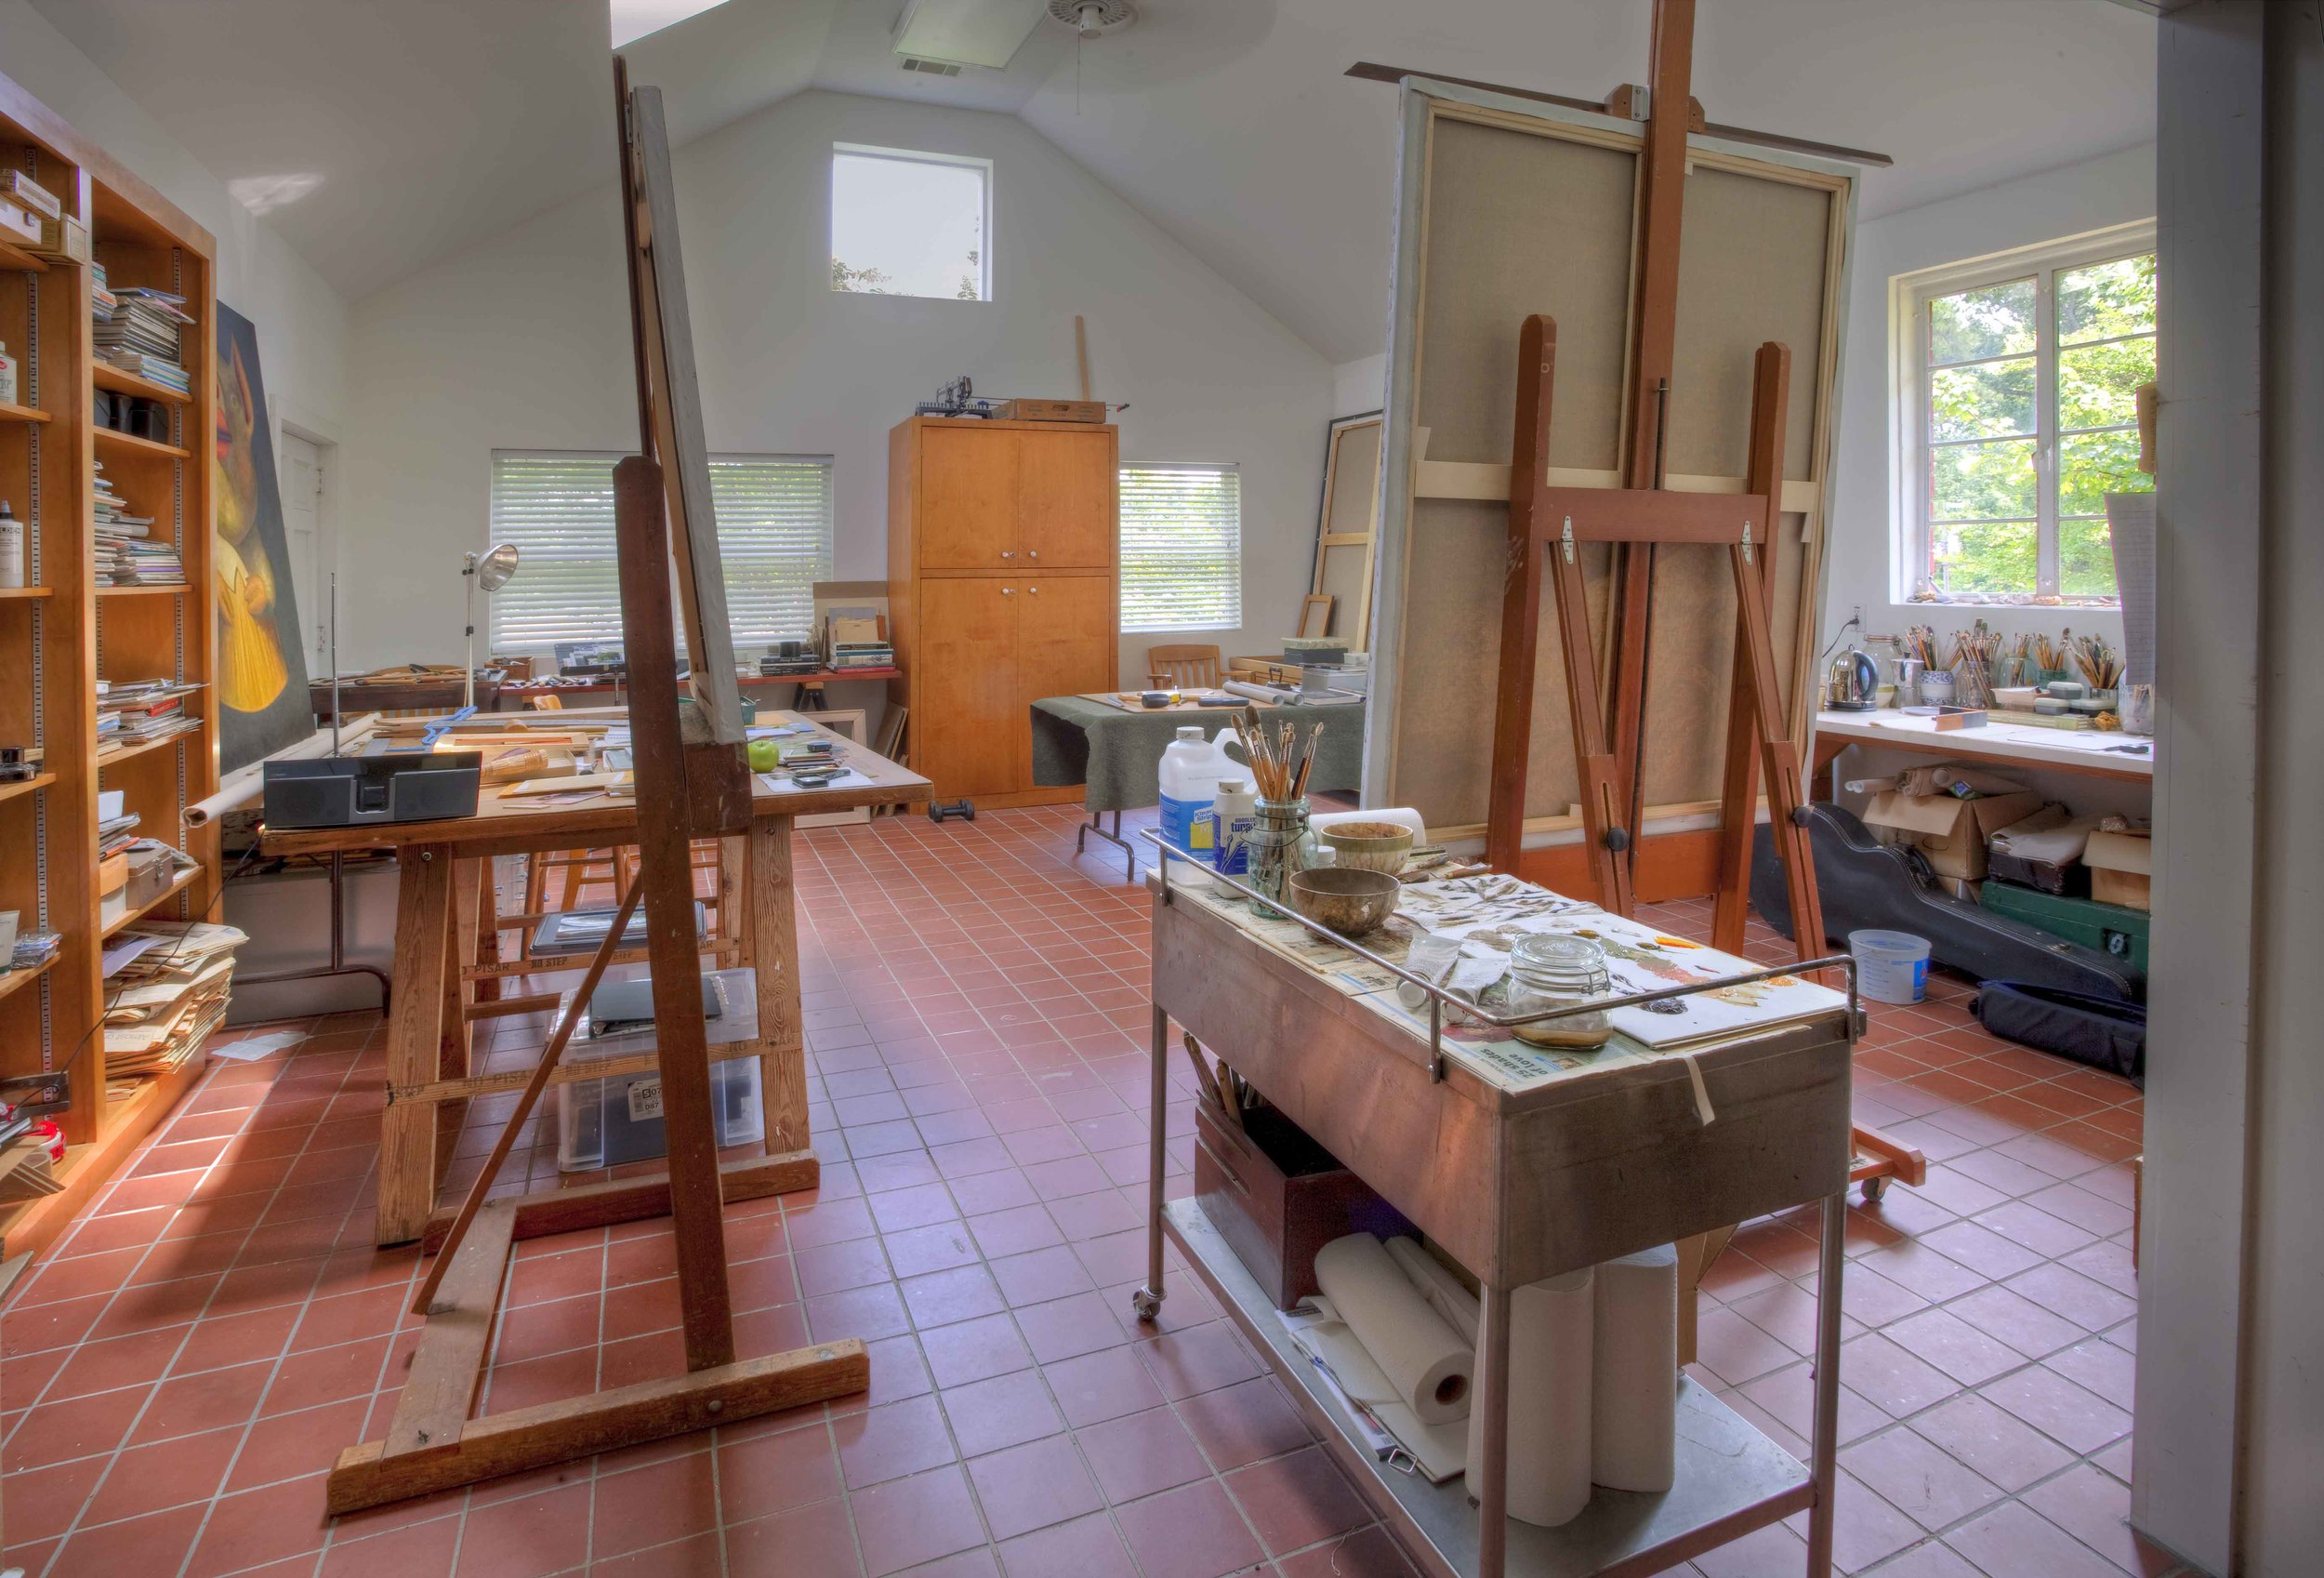 Edward Rice Studio angle 2 rev.jpg